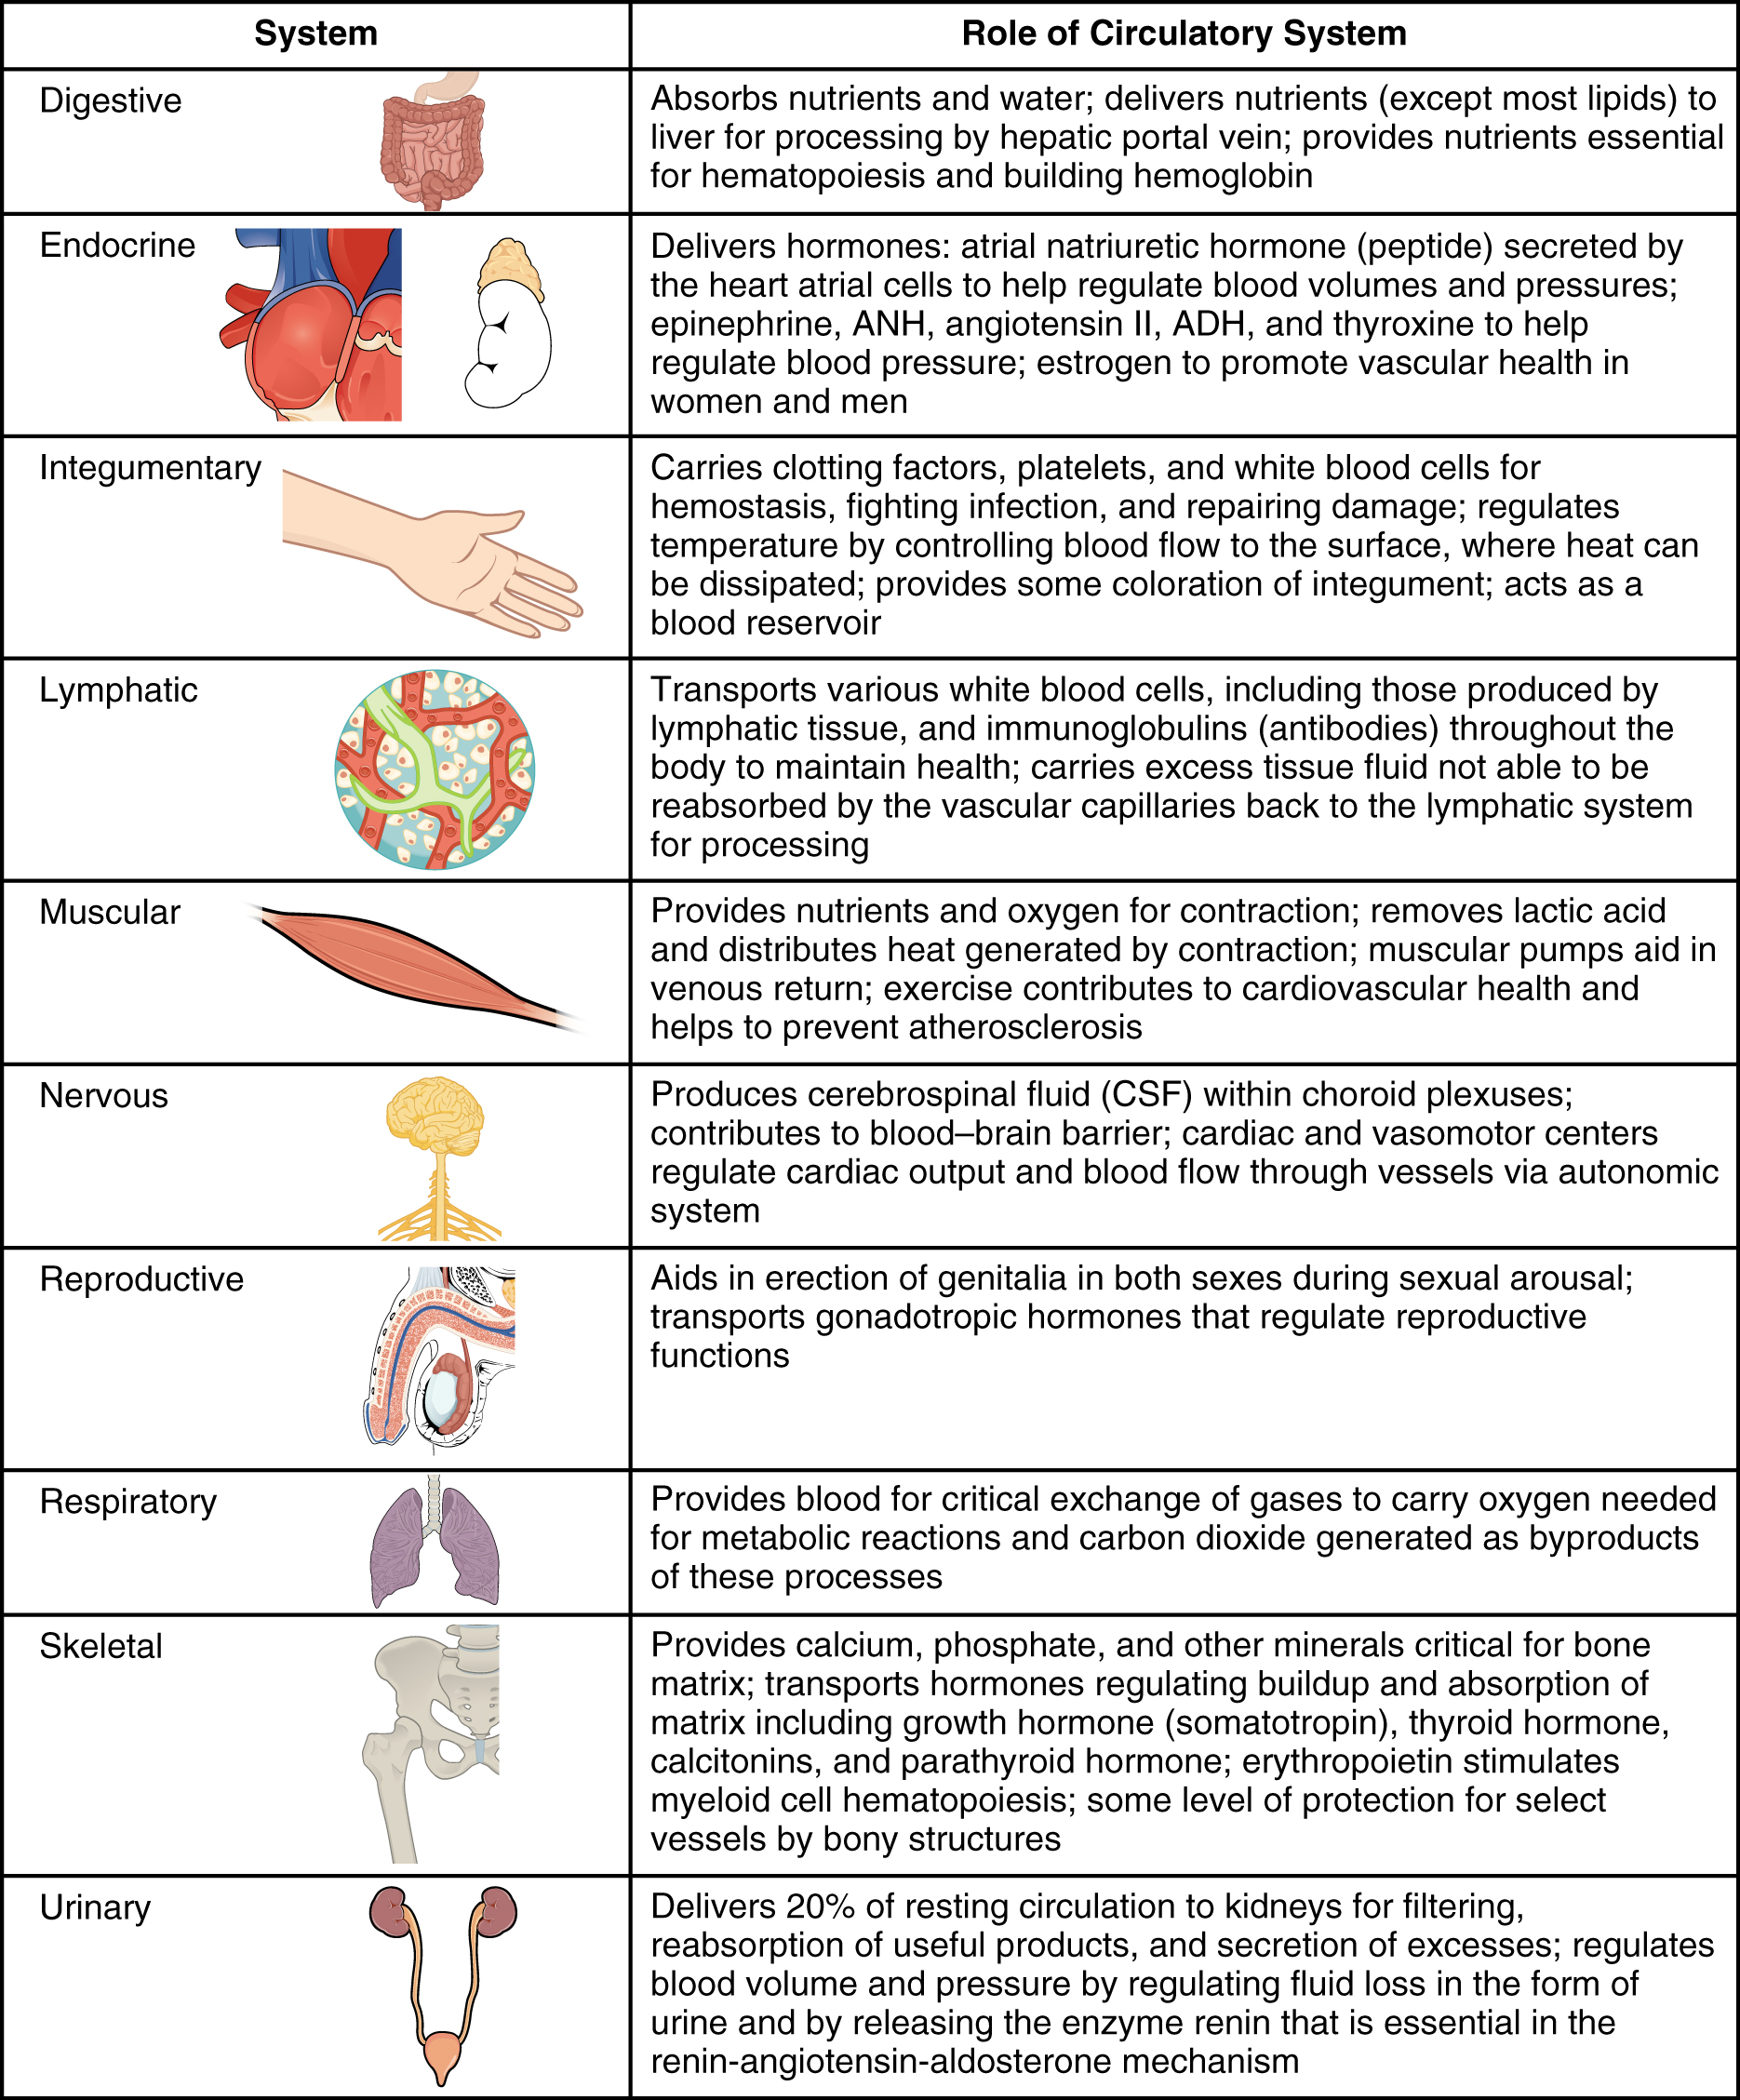 This table outlines the role of the circulatory system in the other organ systems in the body.